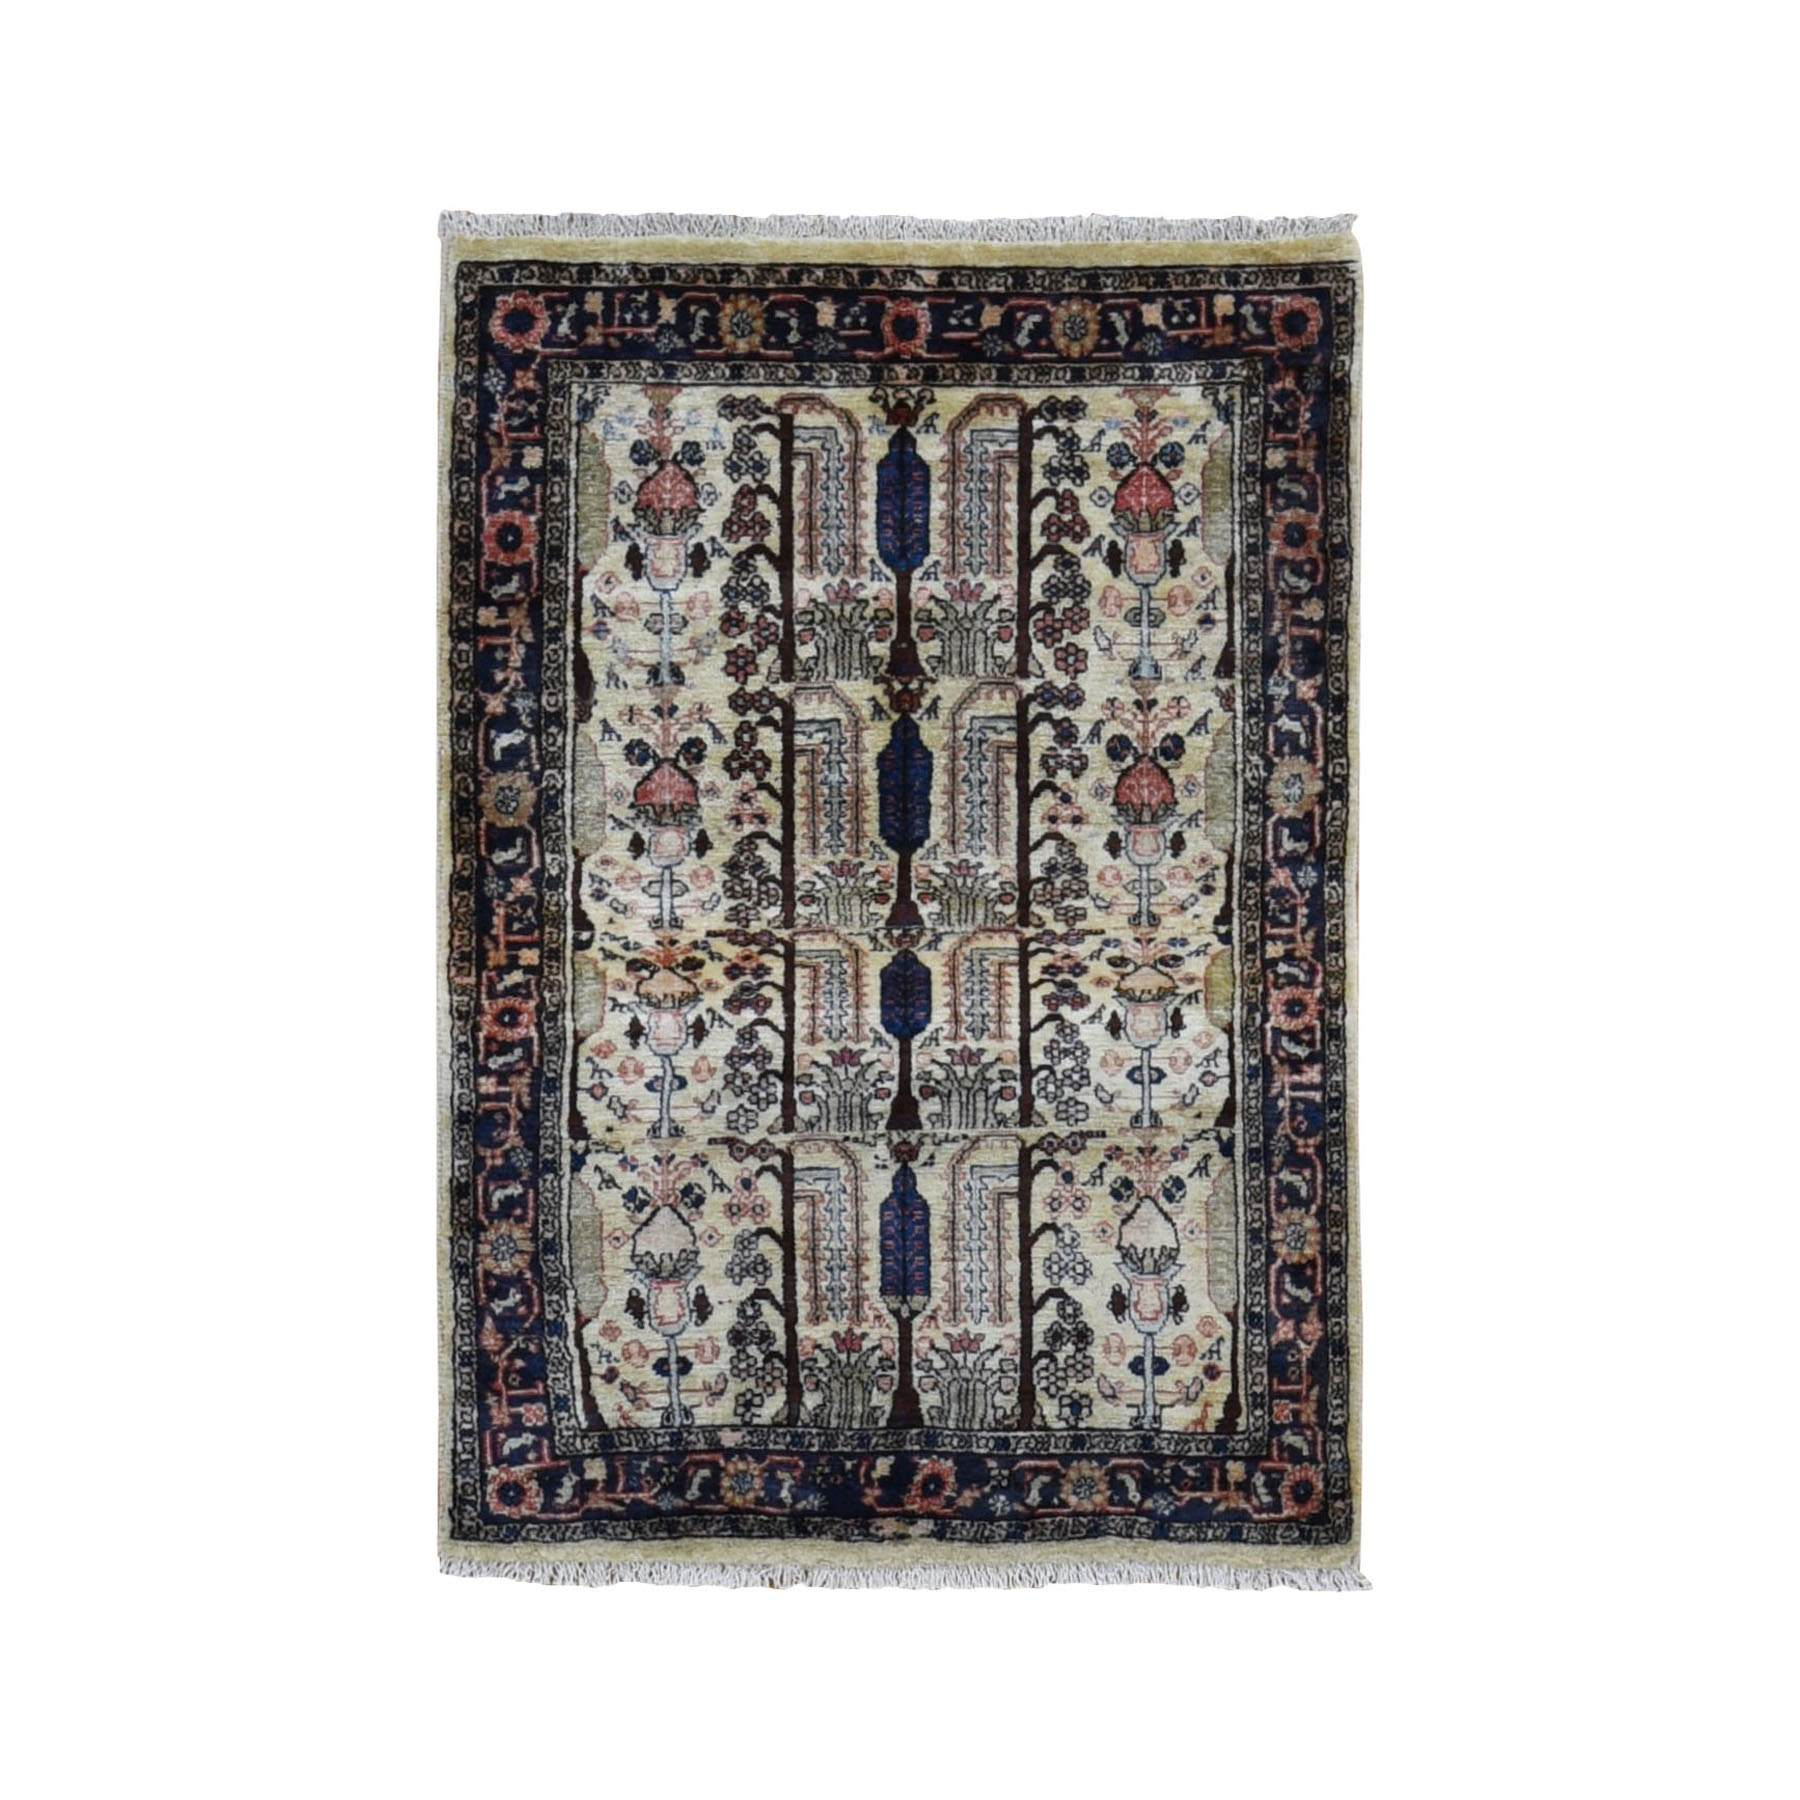 "3'1""x4'8"" Ivory New Persian Hamadan With Willow Tree Design Clean Pure Wool Hand Woven Bohemian Rug"